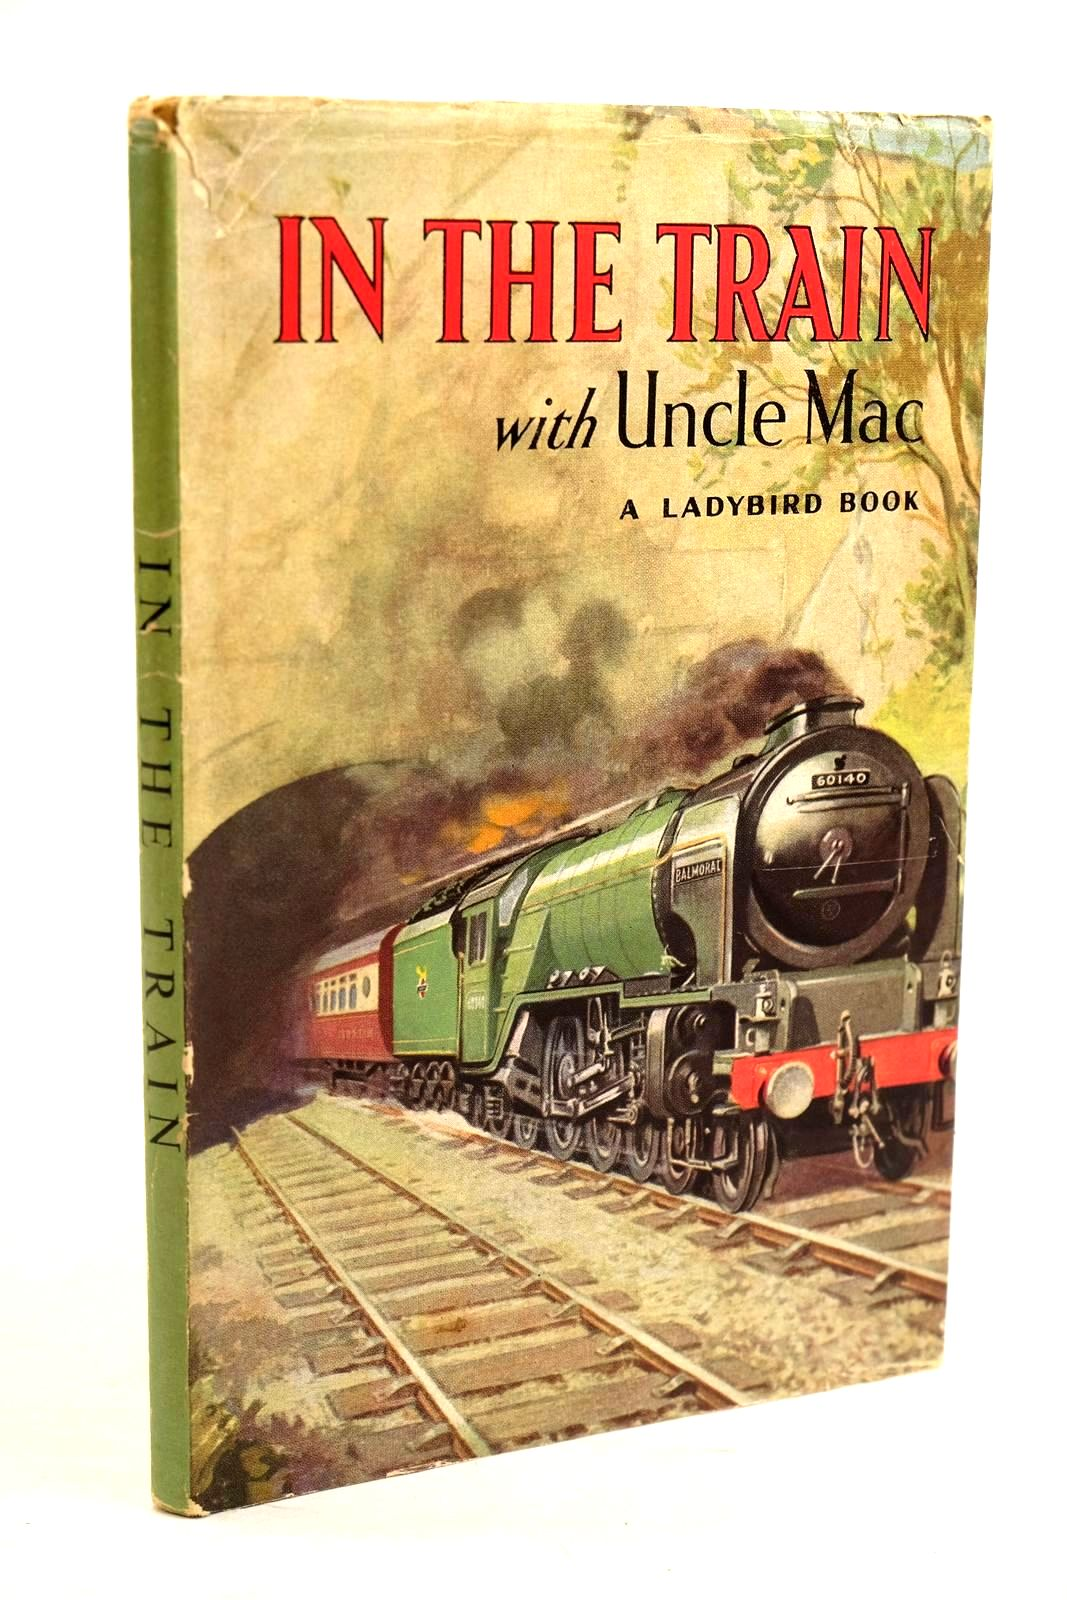 Photo of IN THE TRAIN WITH UNCLE MAC written by McCulloch, Derek illustrated by Watson, W.C. published by Wills & Hepworth Ltd. (STOCK CODE: 1320651)  for sale by Stella & Rose's Books